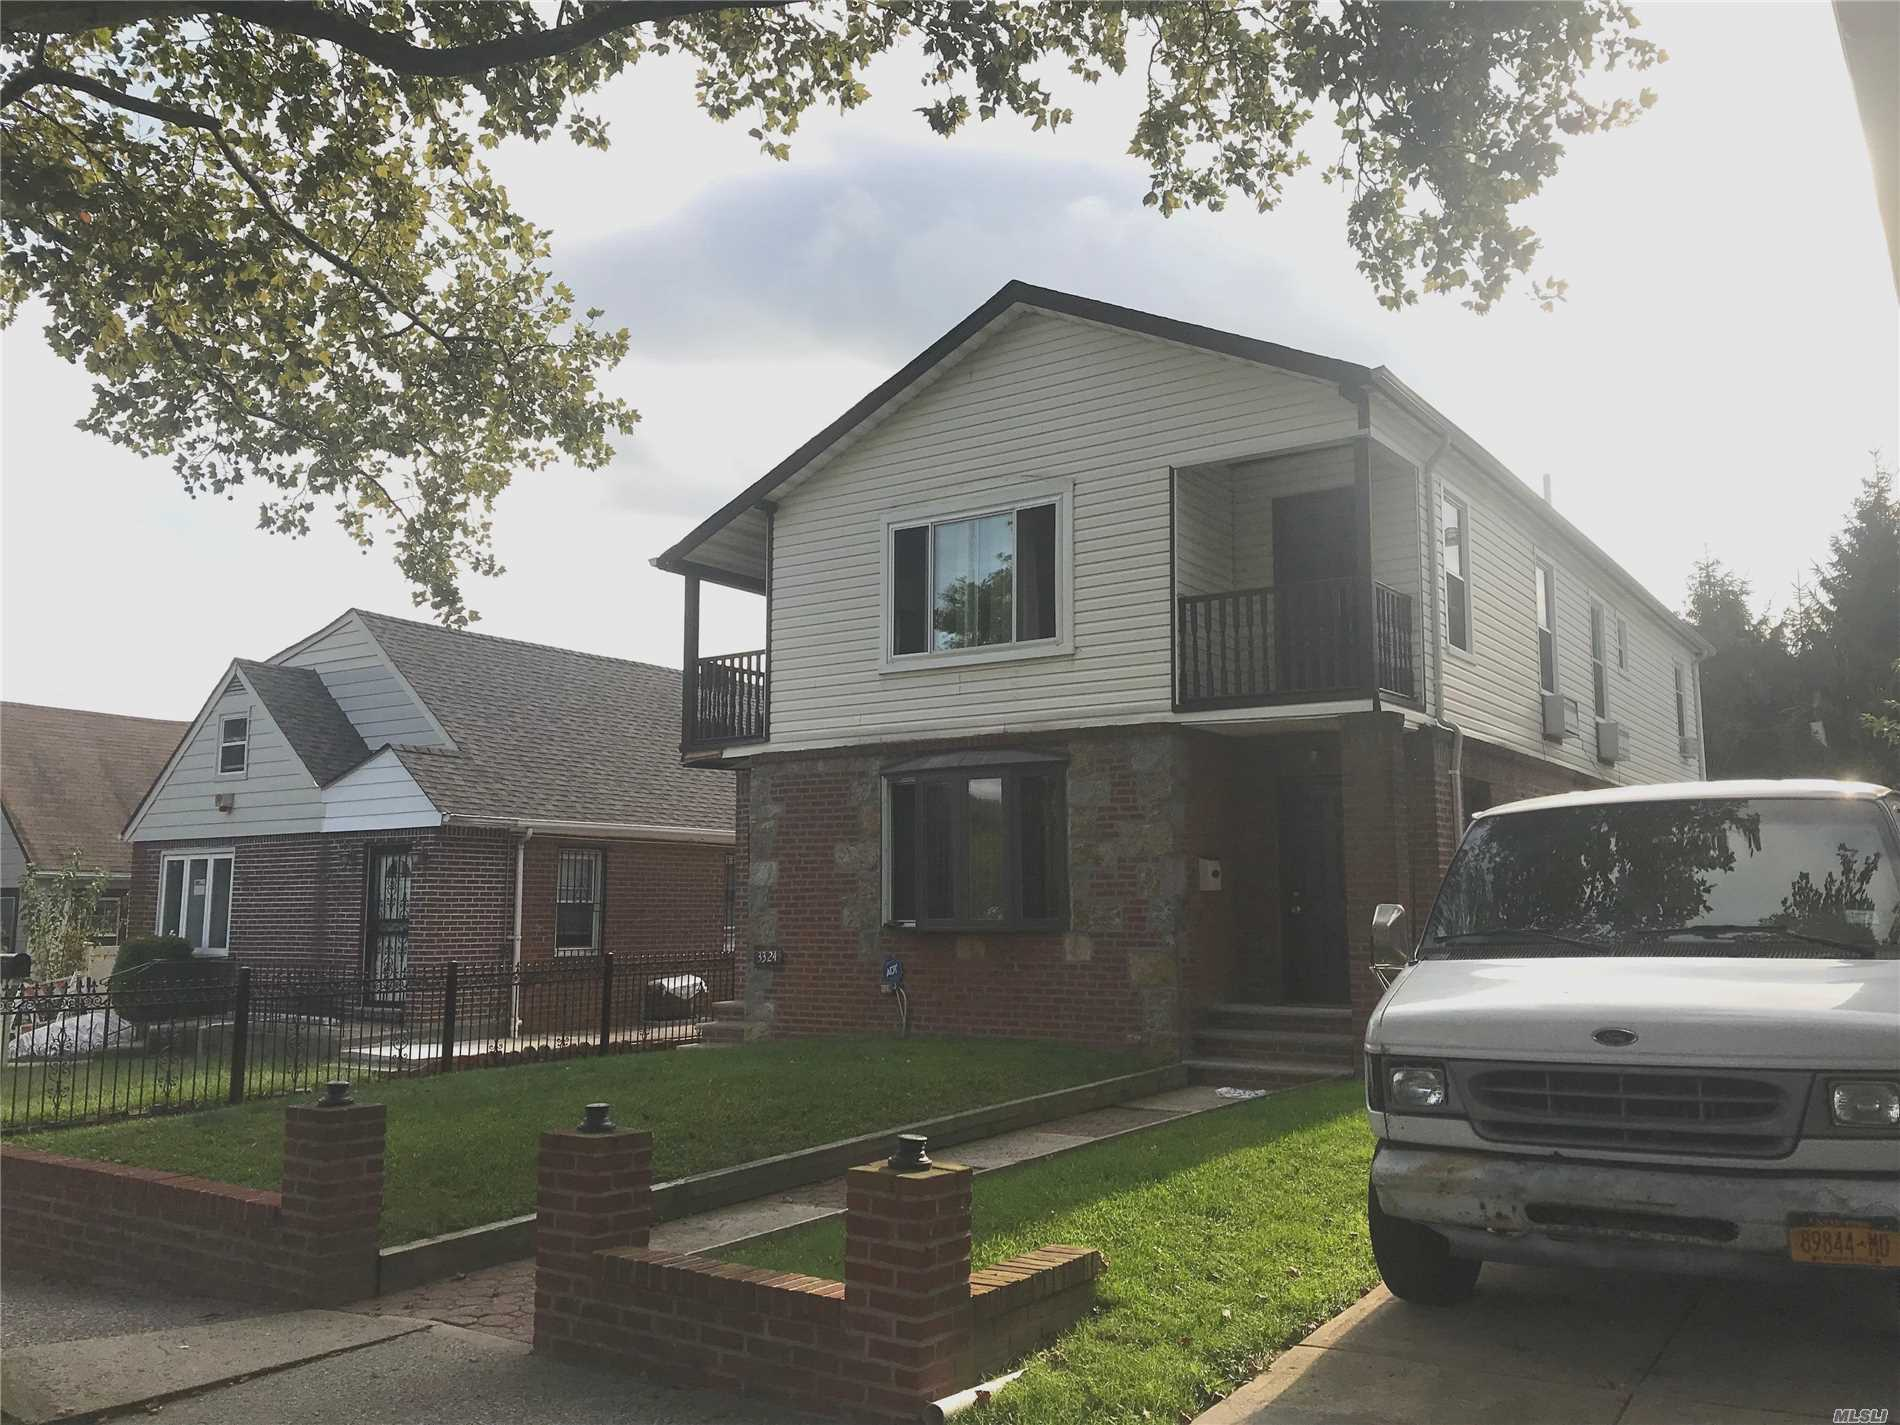 Modern Sunny And Bright Spacious 3 Bedrooms 2 Baths Rental On 2 Floor With Private Entrance. Updated Kitchen And Baths. Spacious Living Room With Hardwood Floors And Sky-Lites. 2 Balconies. Windows In All Rooms. Pets Okay. School District 26.